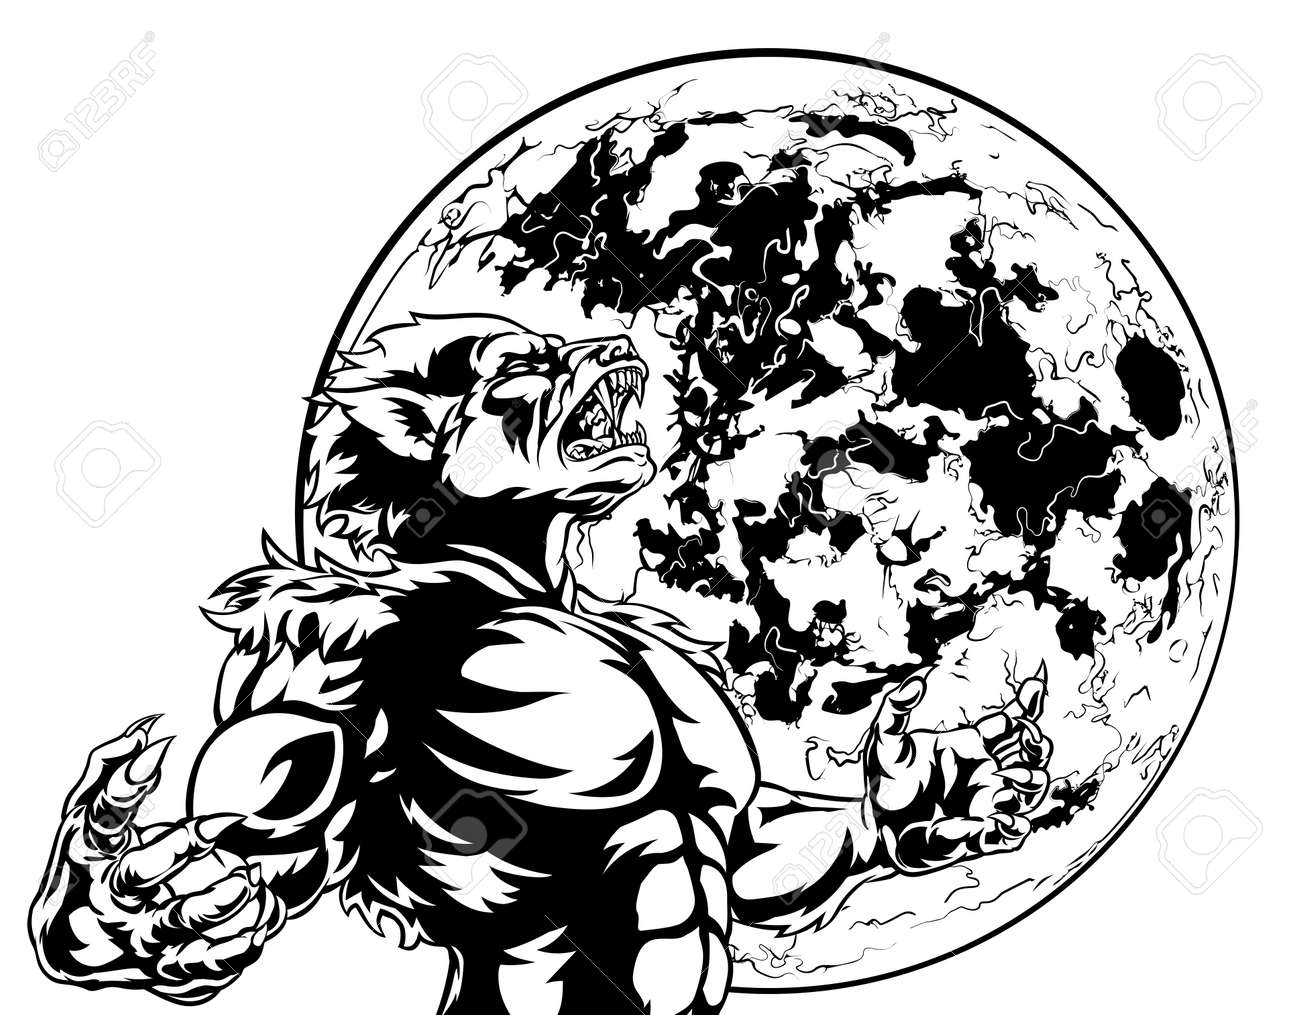 Full Moon Drawing Black And White Howling Werewolf Scary Wolf Man Horror Monster At The Full Moon